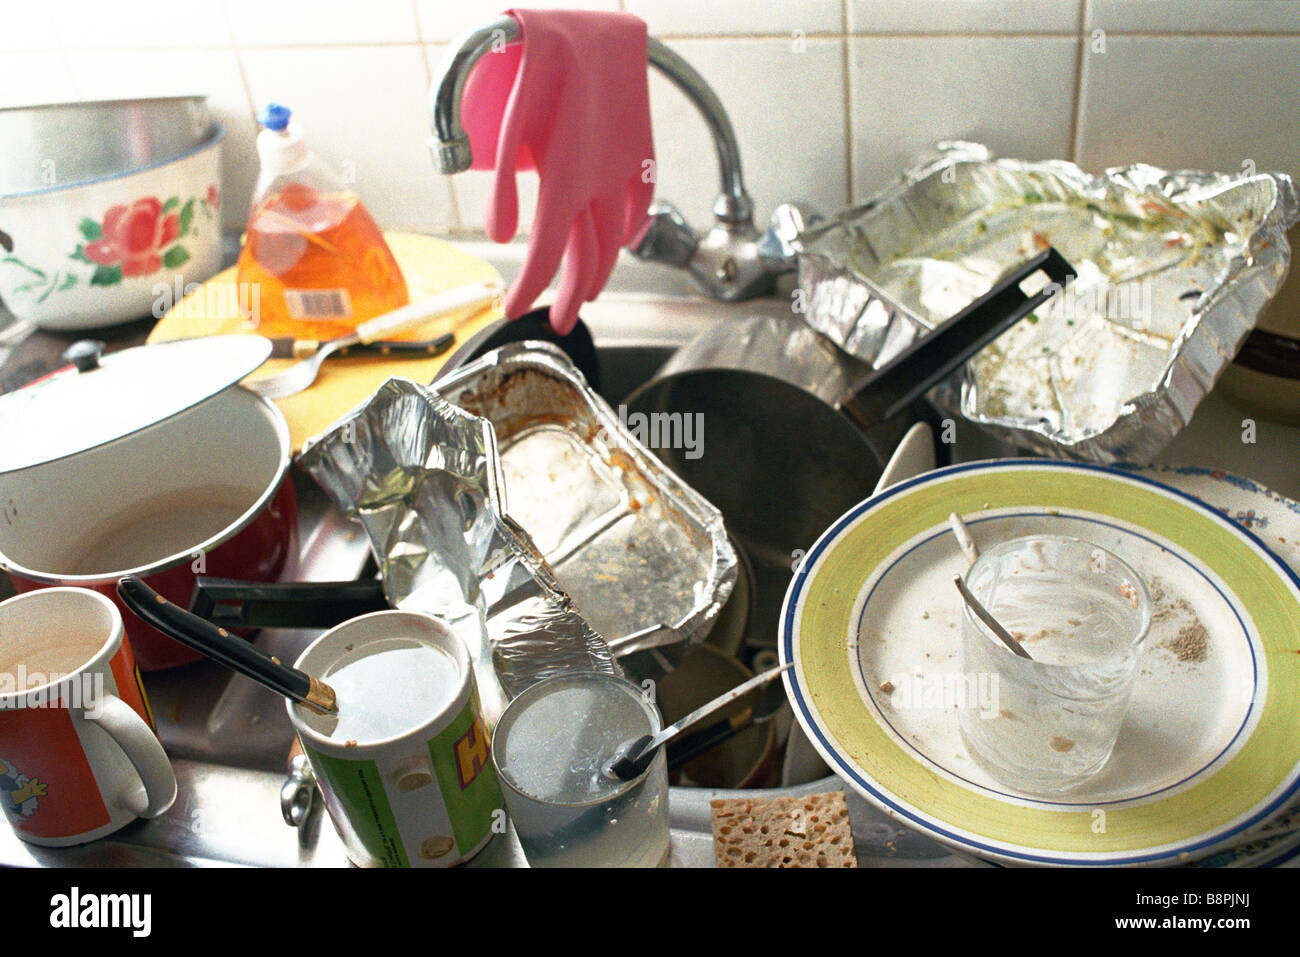 Kitchen Sink With Dishes kitchen sink, counter piled over with dirty dishes stock photo